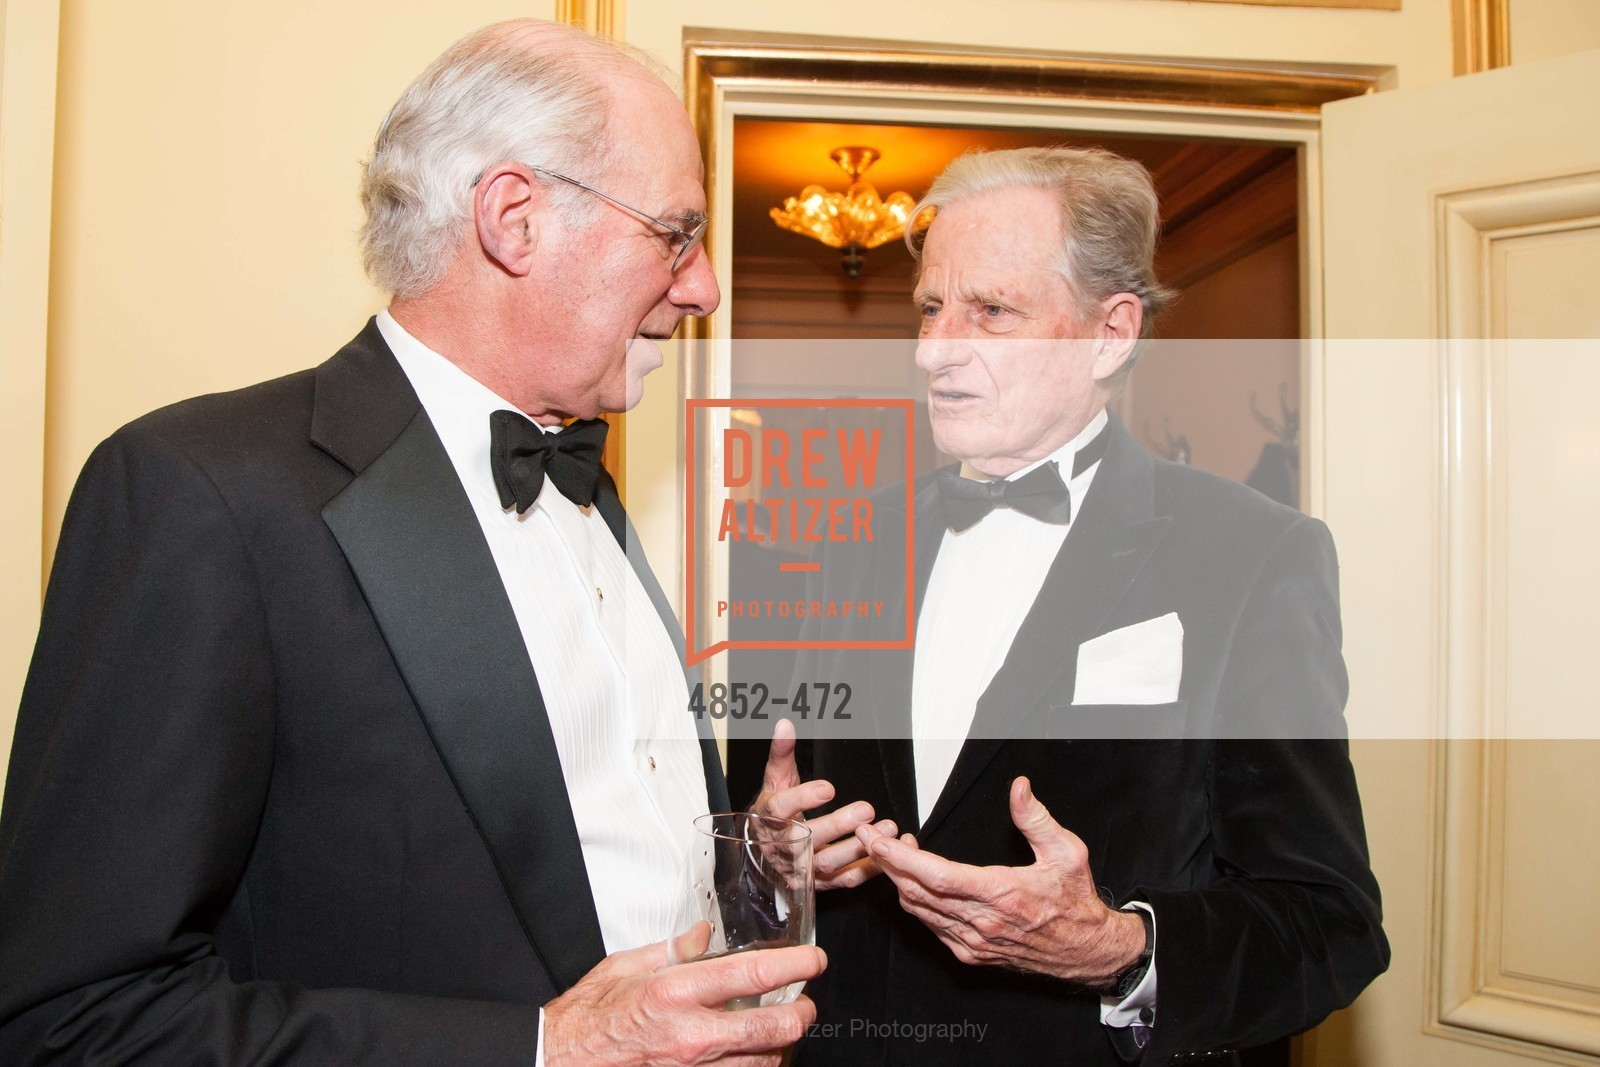 John Osterwiess, SAN FRANCISCO BALLET Opening Night Gala: PHENOMENAL - Intermission & Dinner, US. SF City Hall, January 22nd, 2014,Drew Altizer, Drew Altizer Photography, full-service agency, private events, San Francisco photographer, photographer california